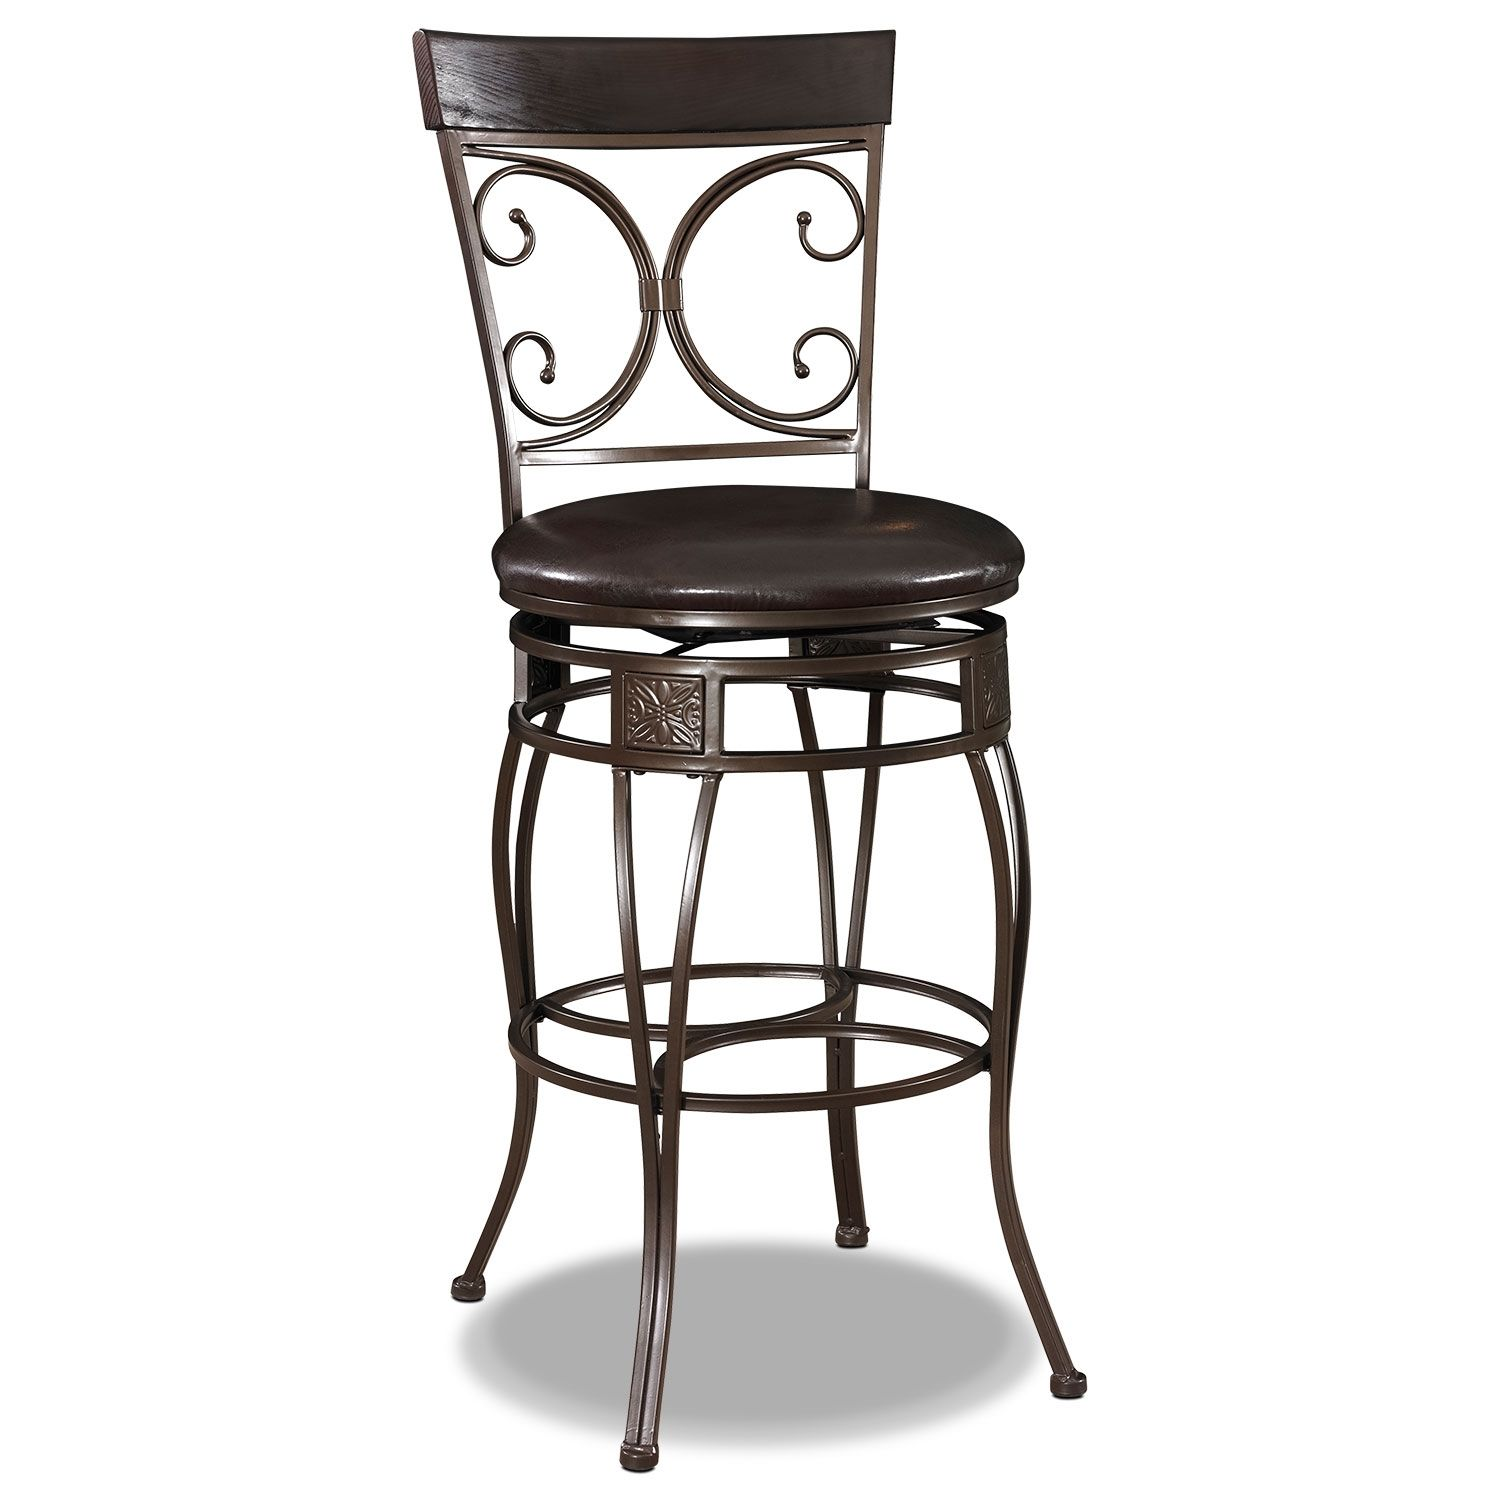 Elegant Elements The Grandview Barstool Brings Gorgeous Grace To Classic Design Style Densely Padded Faux Leath Metal Bar Stools Bar Stools Black Bar Stools